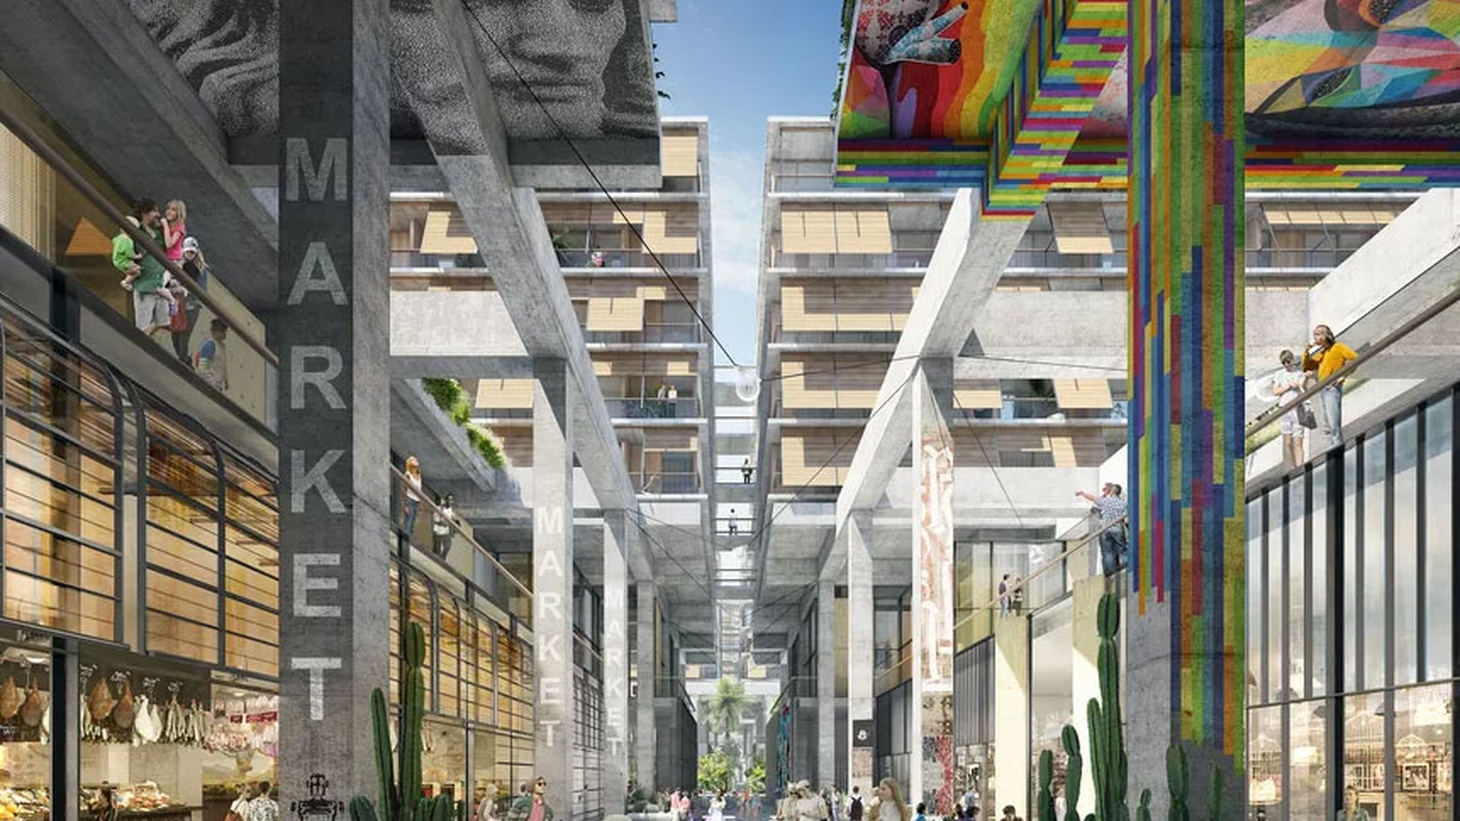 Some high-profile European architects have projects in the works for the Southland and have waded into the argument about density. DnA looks at projects both spiritual and commercial from famed Dutch architect Rem Koolhaas and his firm OMA, and we check out a mammoth mixed-use project in the Arts District by Herzog & de Meuron.